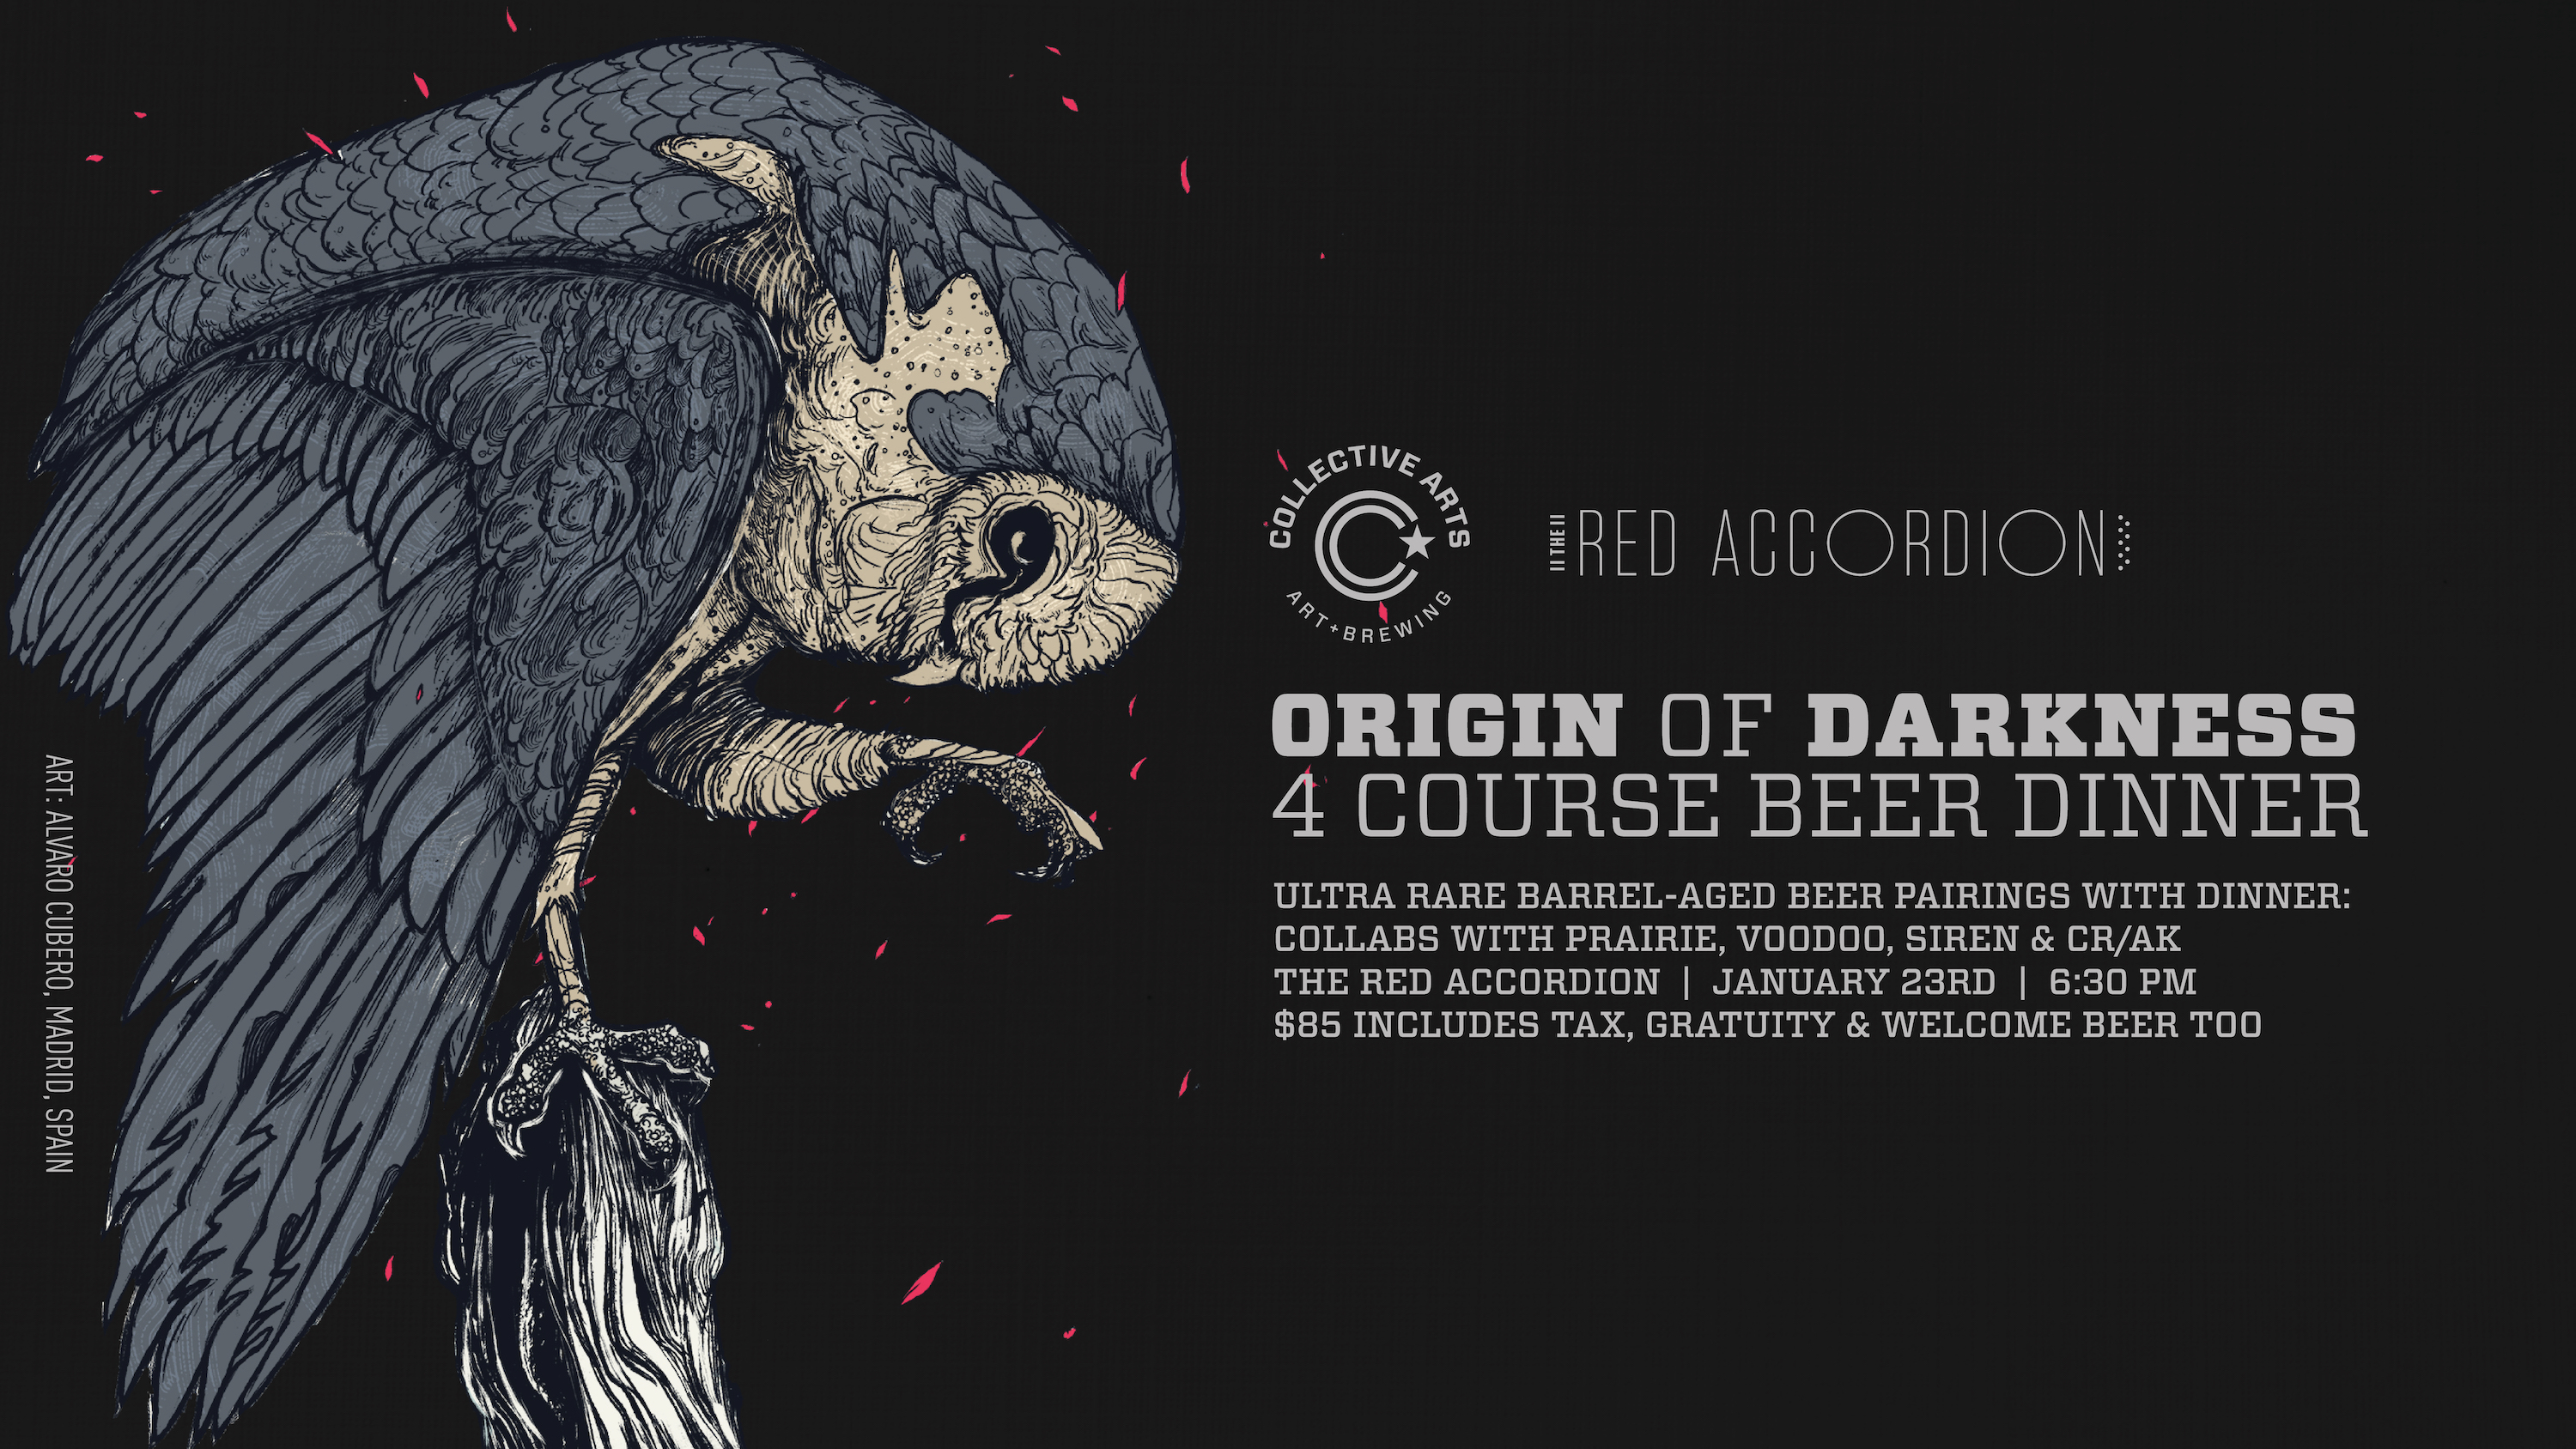 Origin Of Darkness Collective Arts Beer Dinner